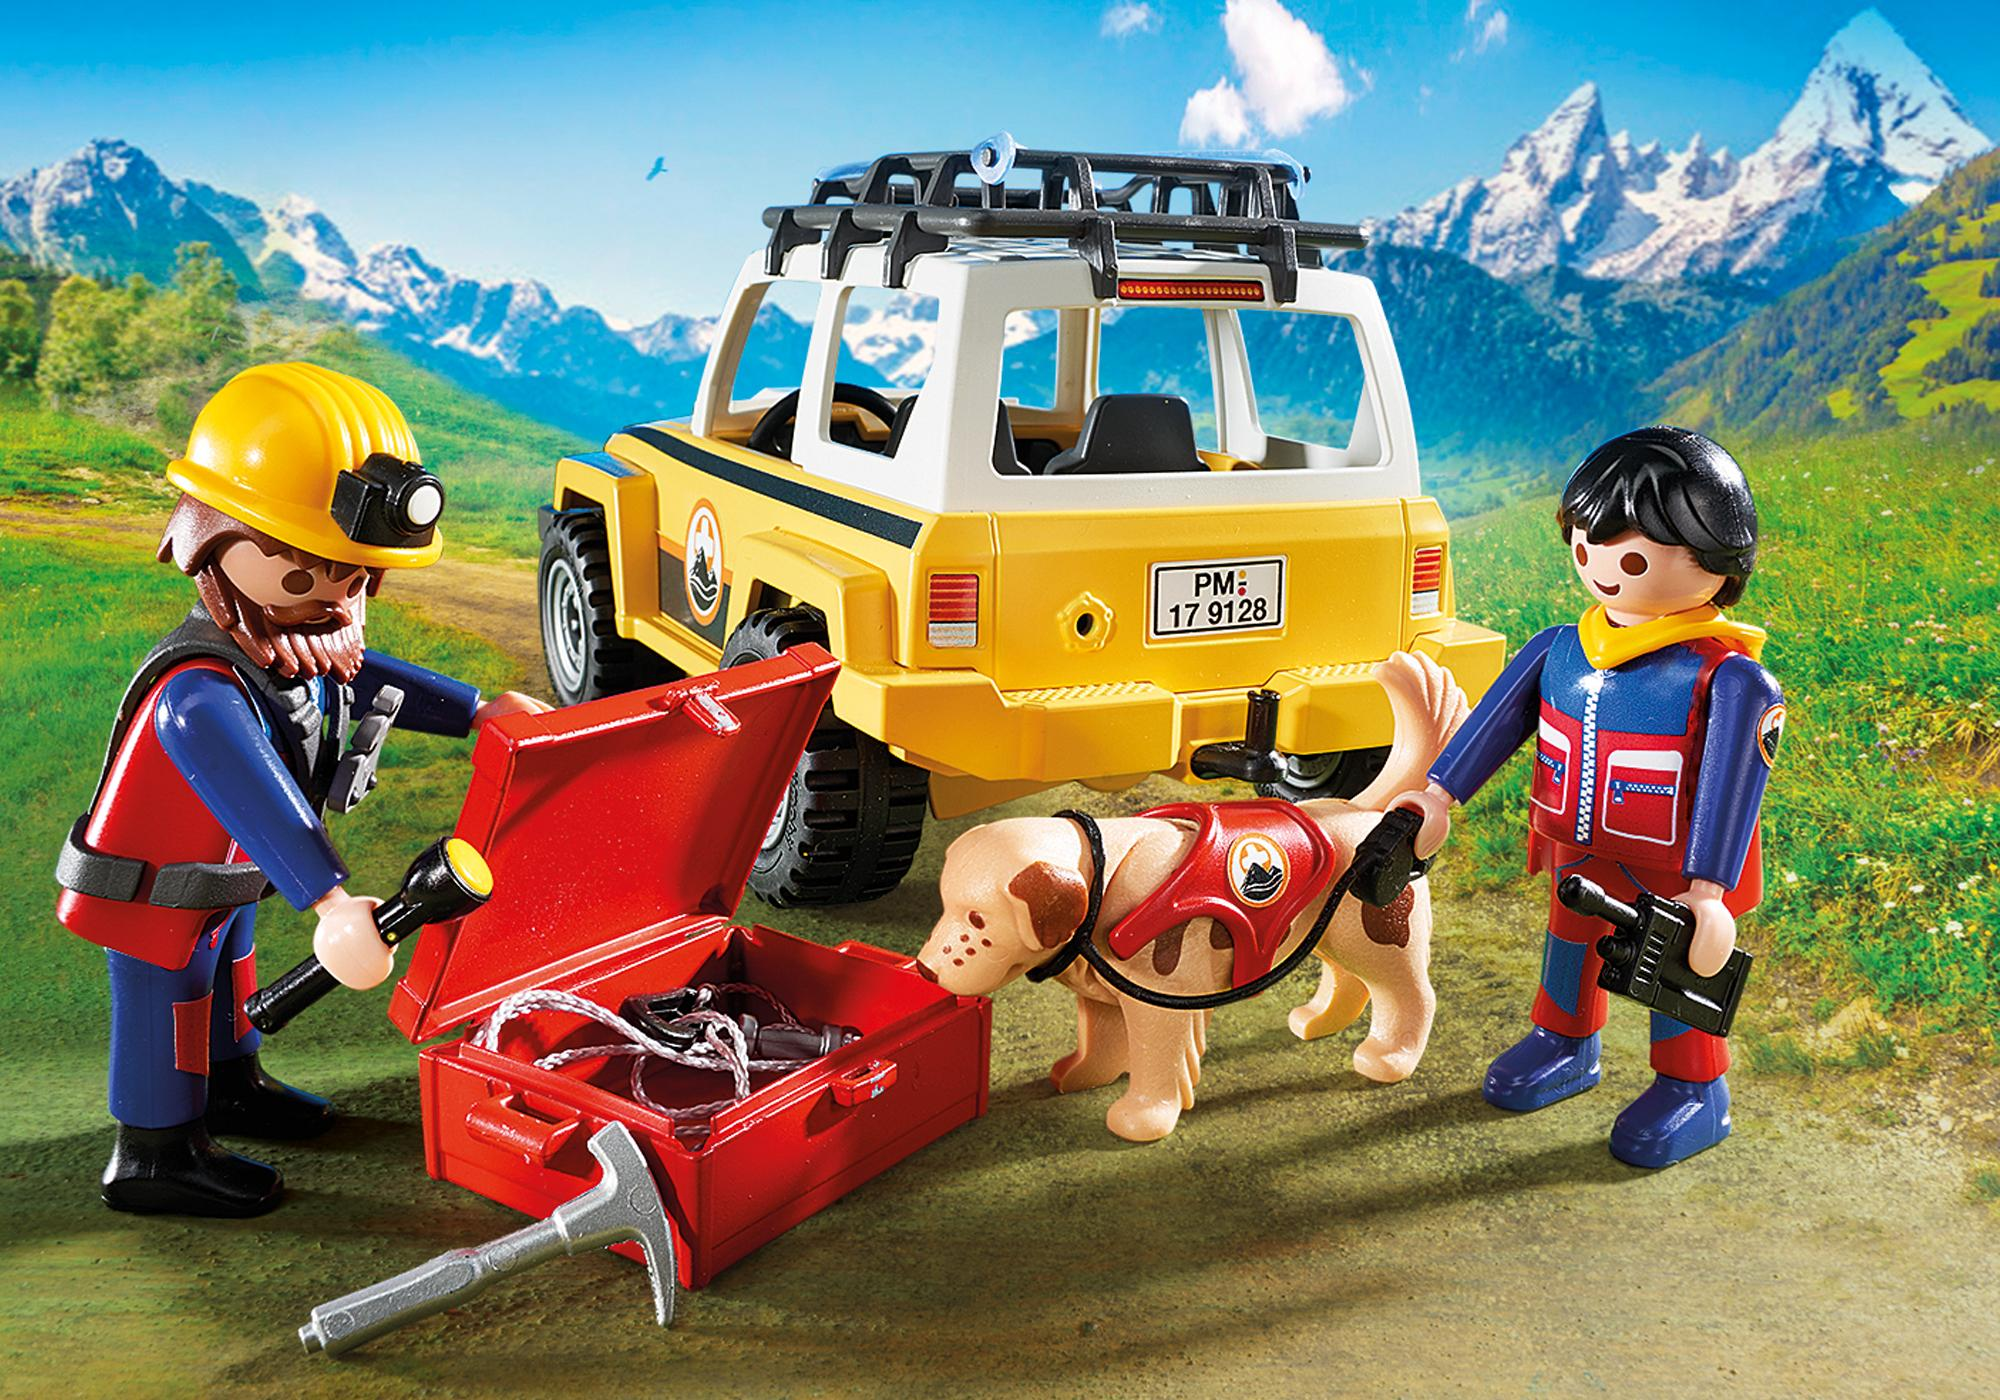 http://media.playmobil.com/i/playmobil/9128_product_extra1